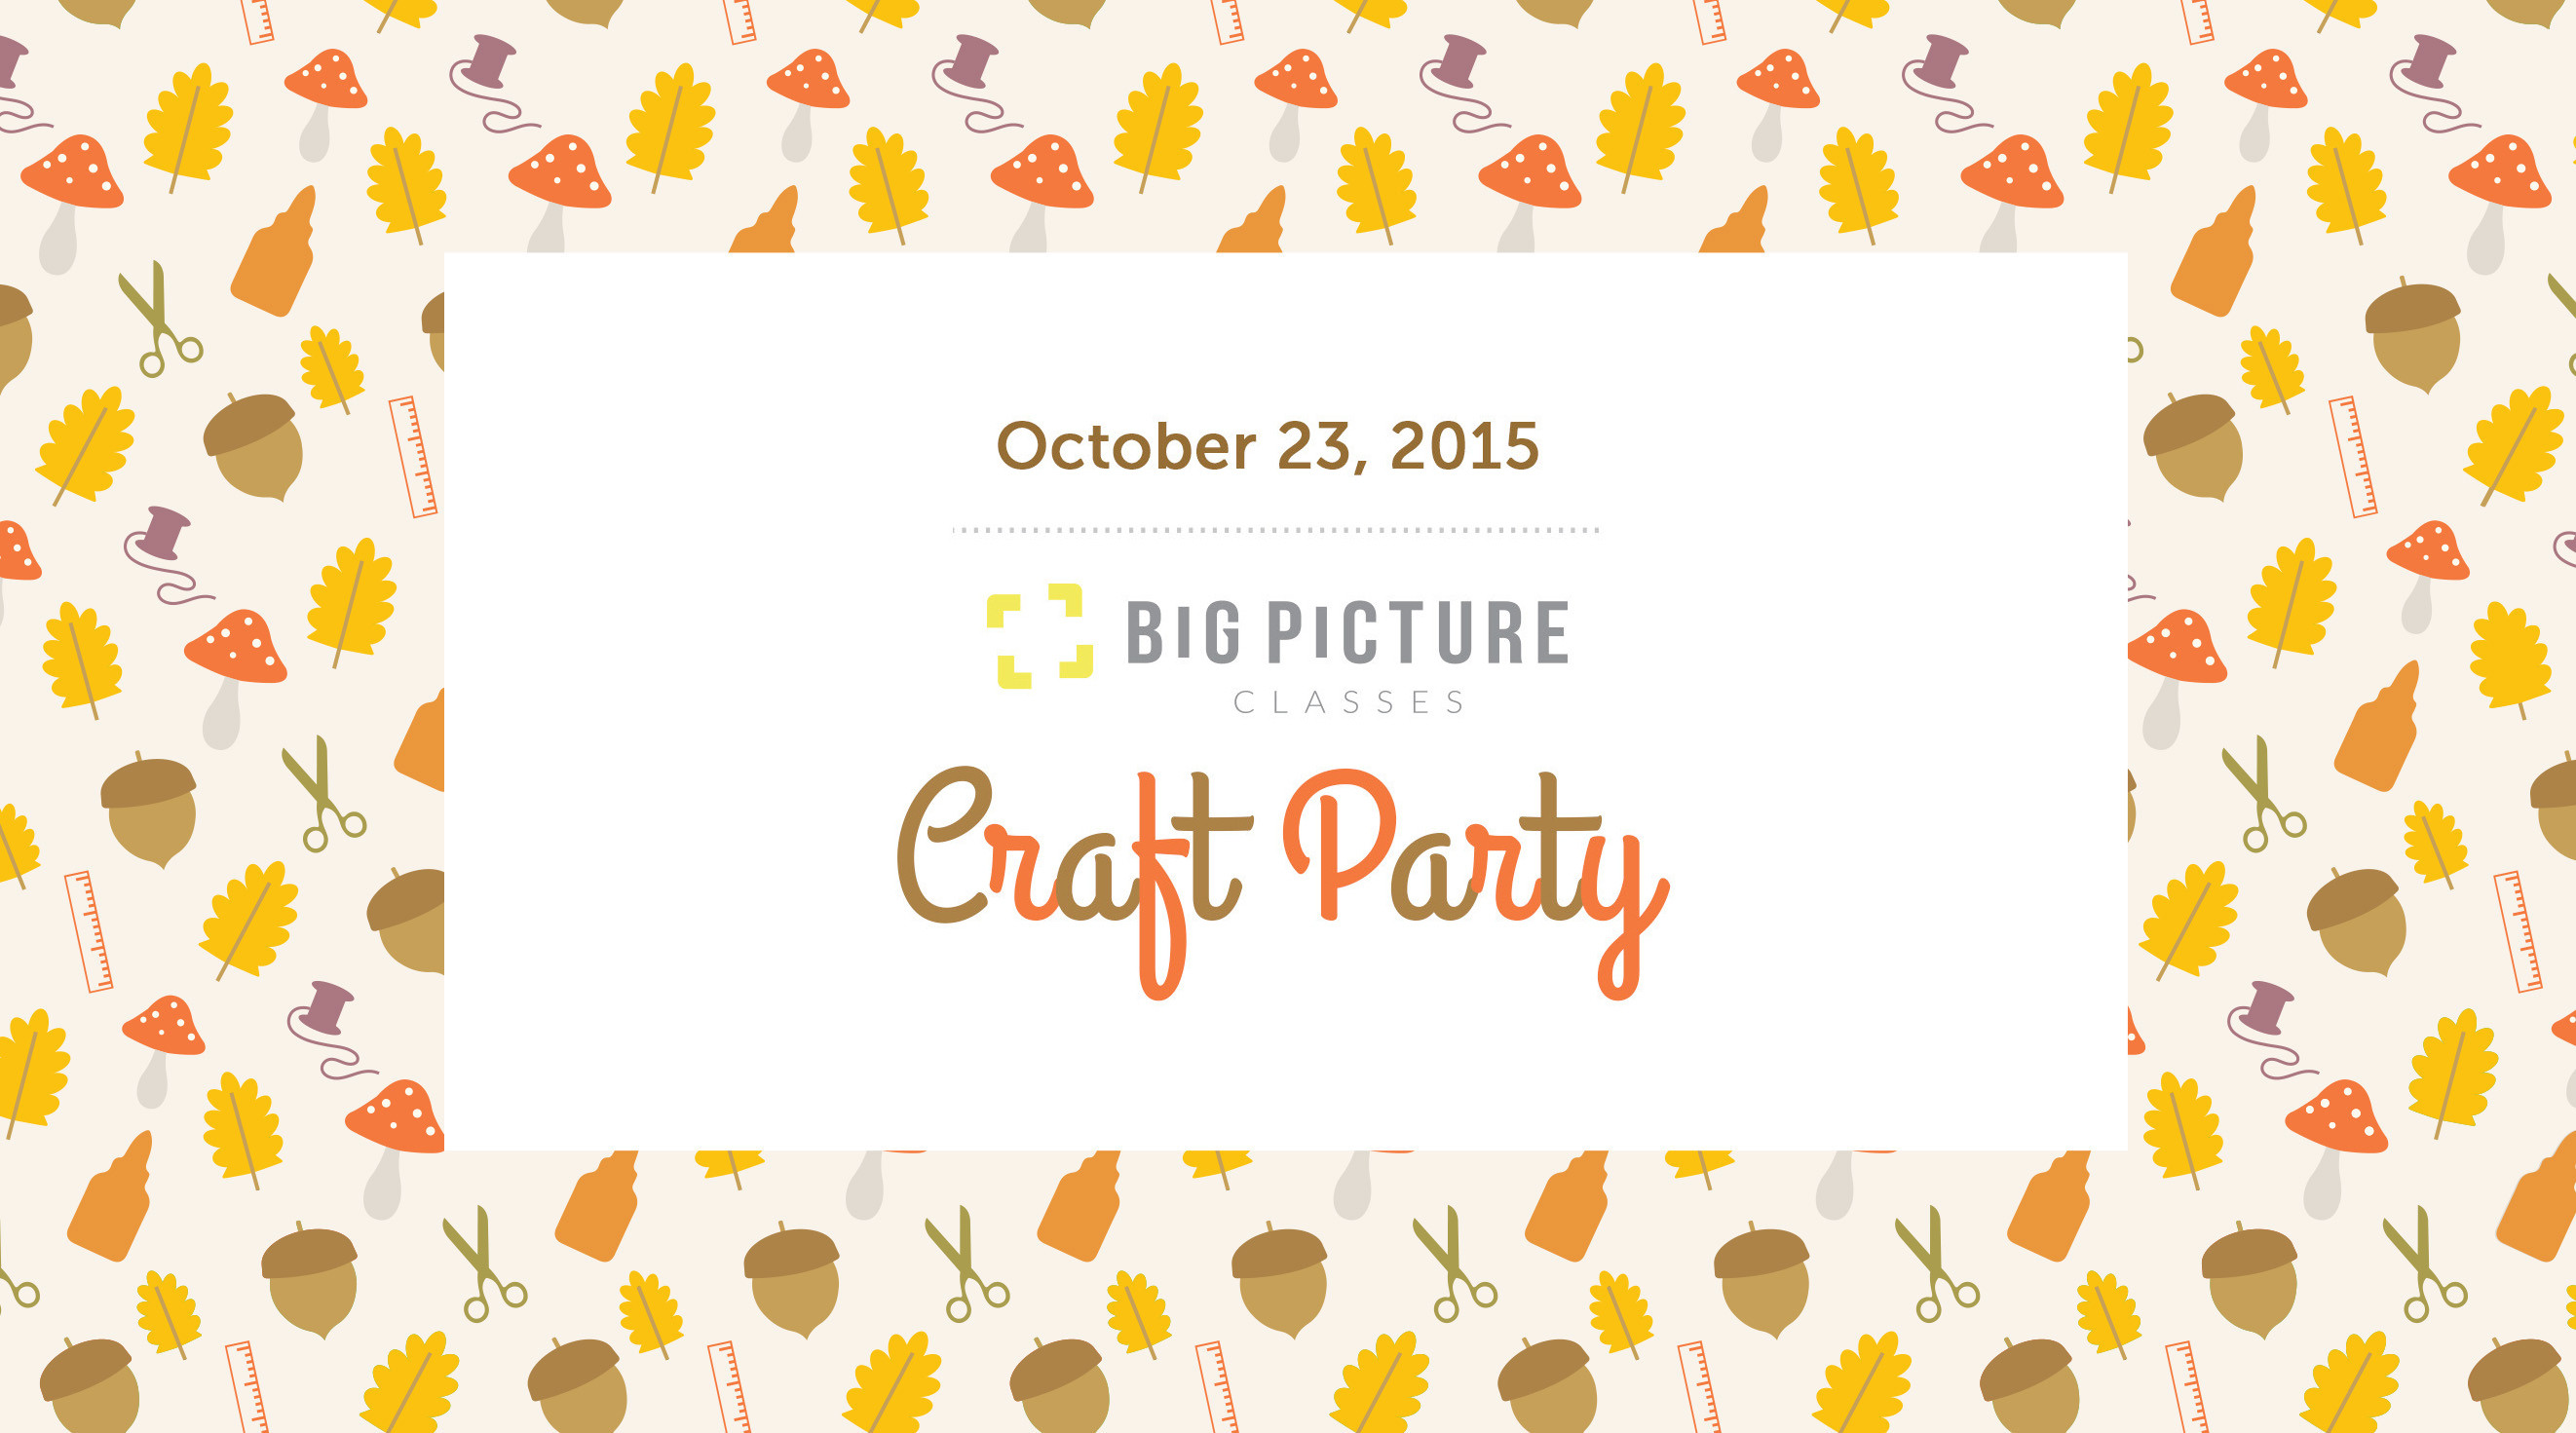 Picture 1 of Craft Party | Fall 2015 at Big Picture Classes